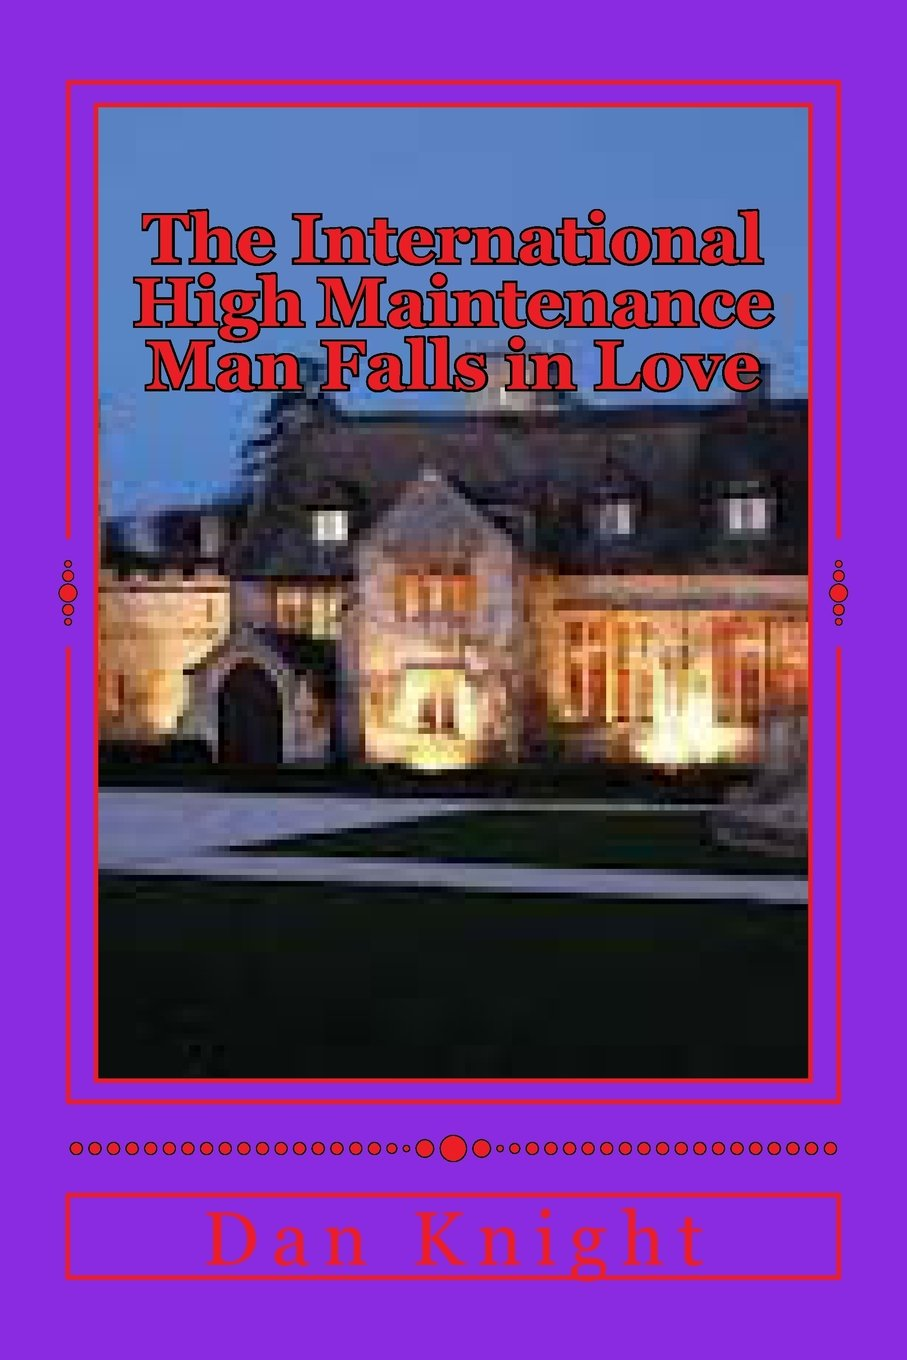 Download The International High Maintenance Man Falls in Love: He never saw it comming she blindsided him (Love can take you places you never imagined) (Volume 1) ebook